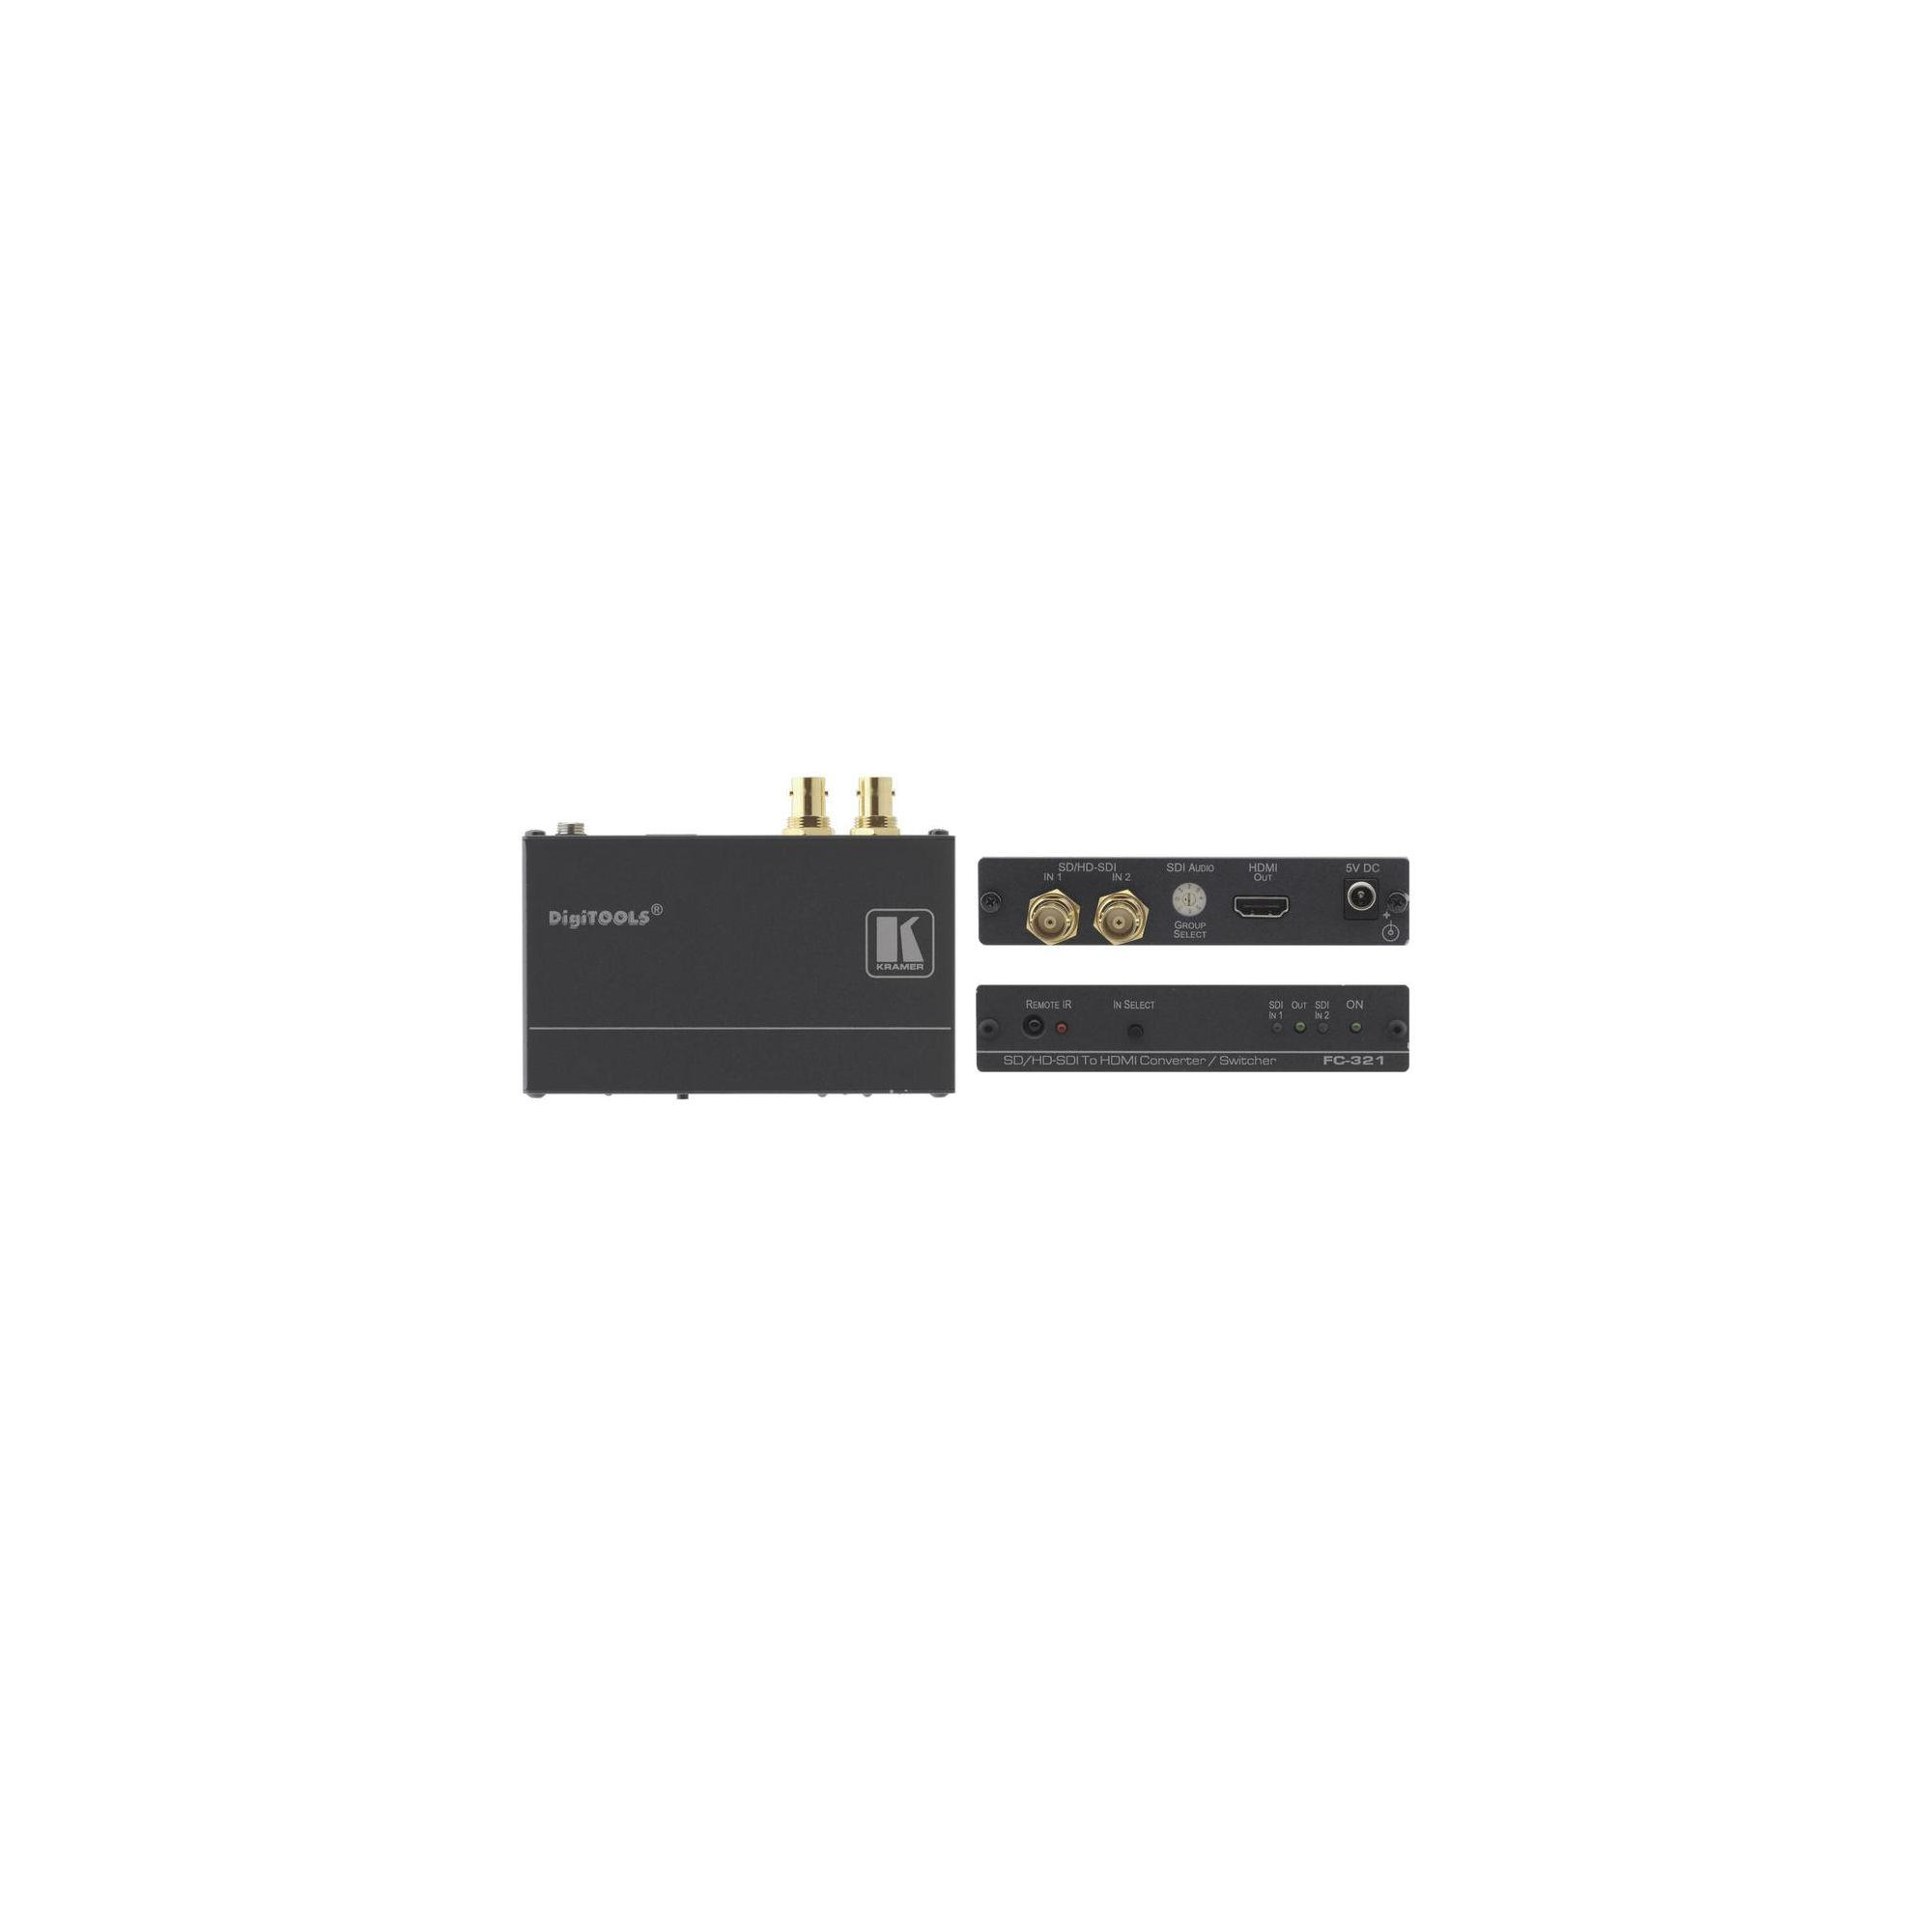 2X1 3G HD-SDI TO HDMI CONVERTOR at Tesco Direct